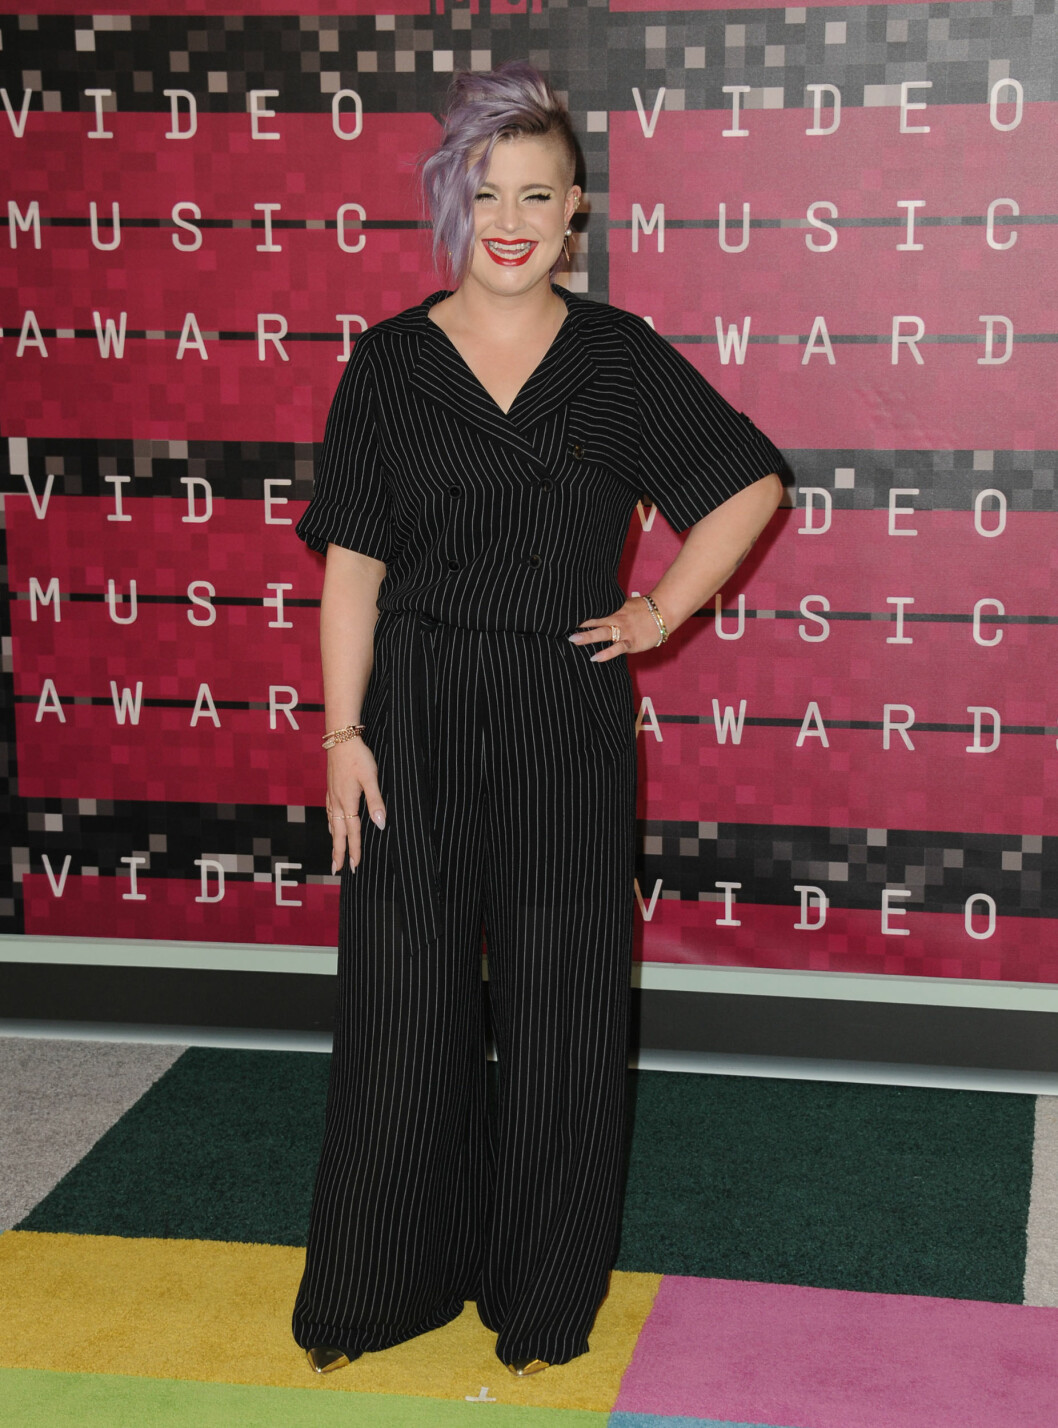 Kelly Osbourne (30) Foto: Zuma Press